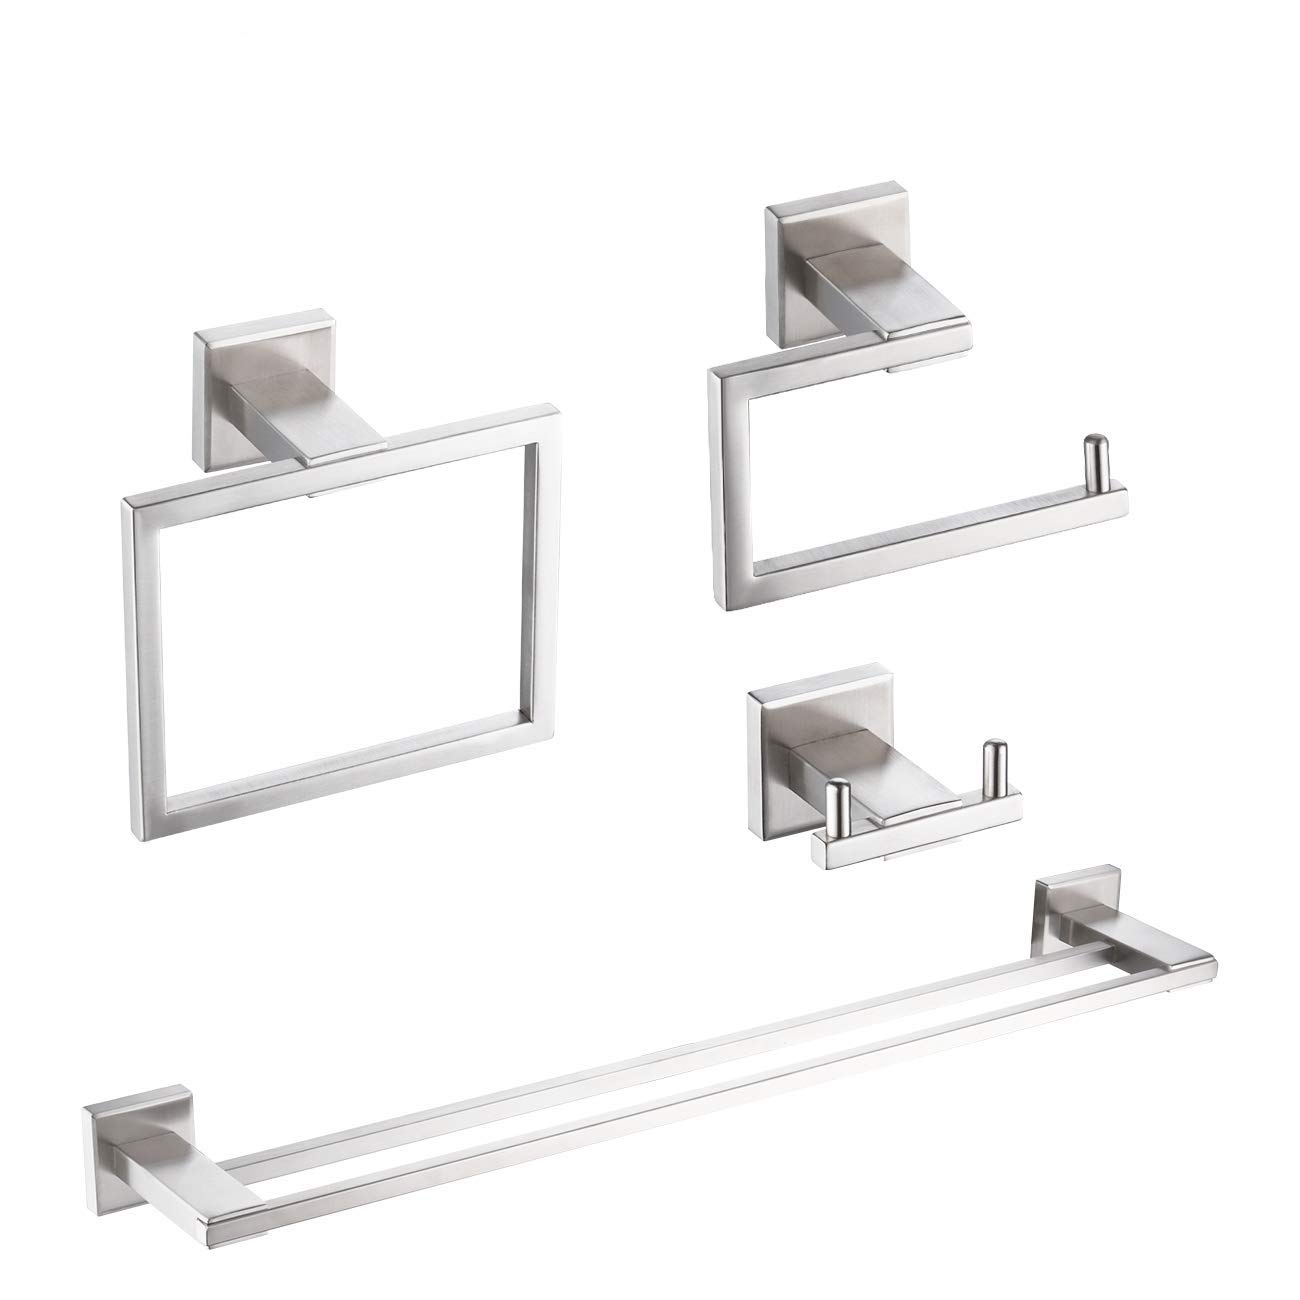 KES Bathroom Accessory Set SUS 304 Stainless Steel 4-Pieces Including Double Towel Bar Toilet Paper Holder Towel Ring Robe Hook Brushed Finish Wall Mount No Drill, LA242DG-43